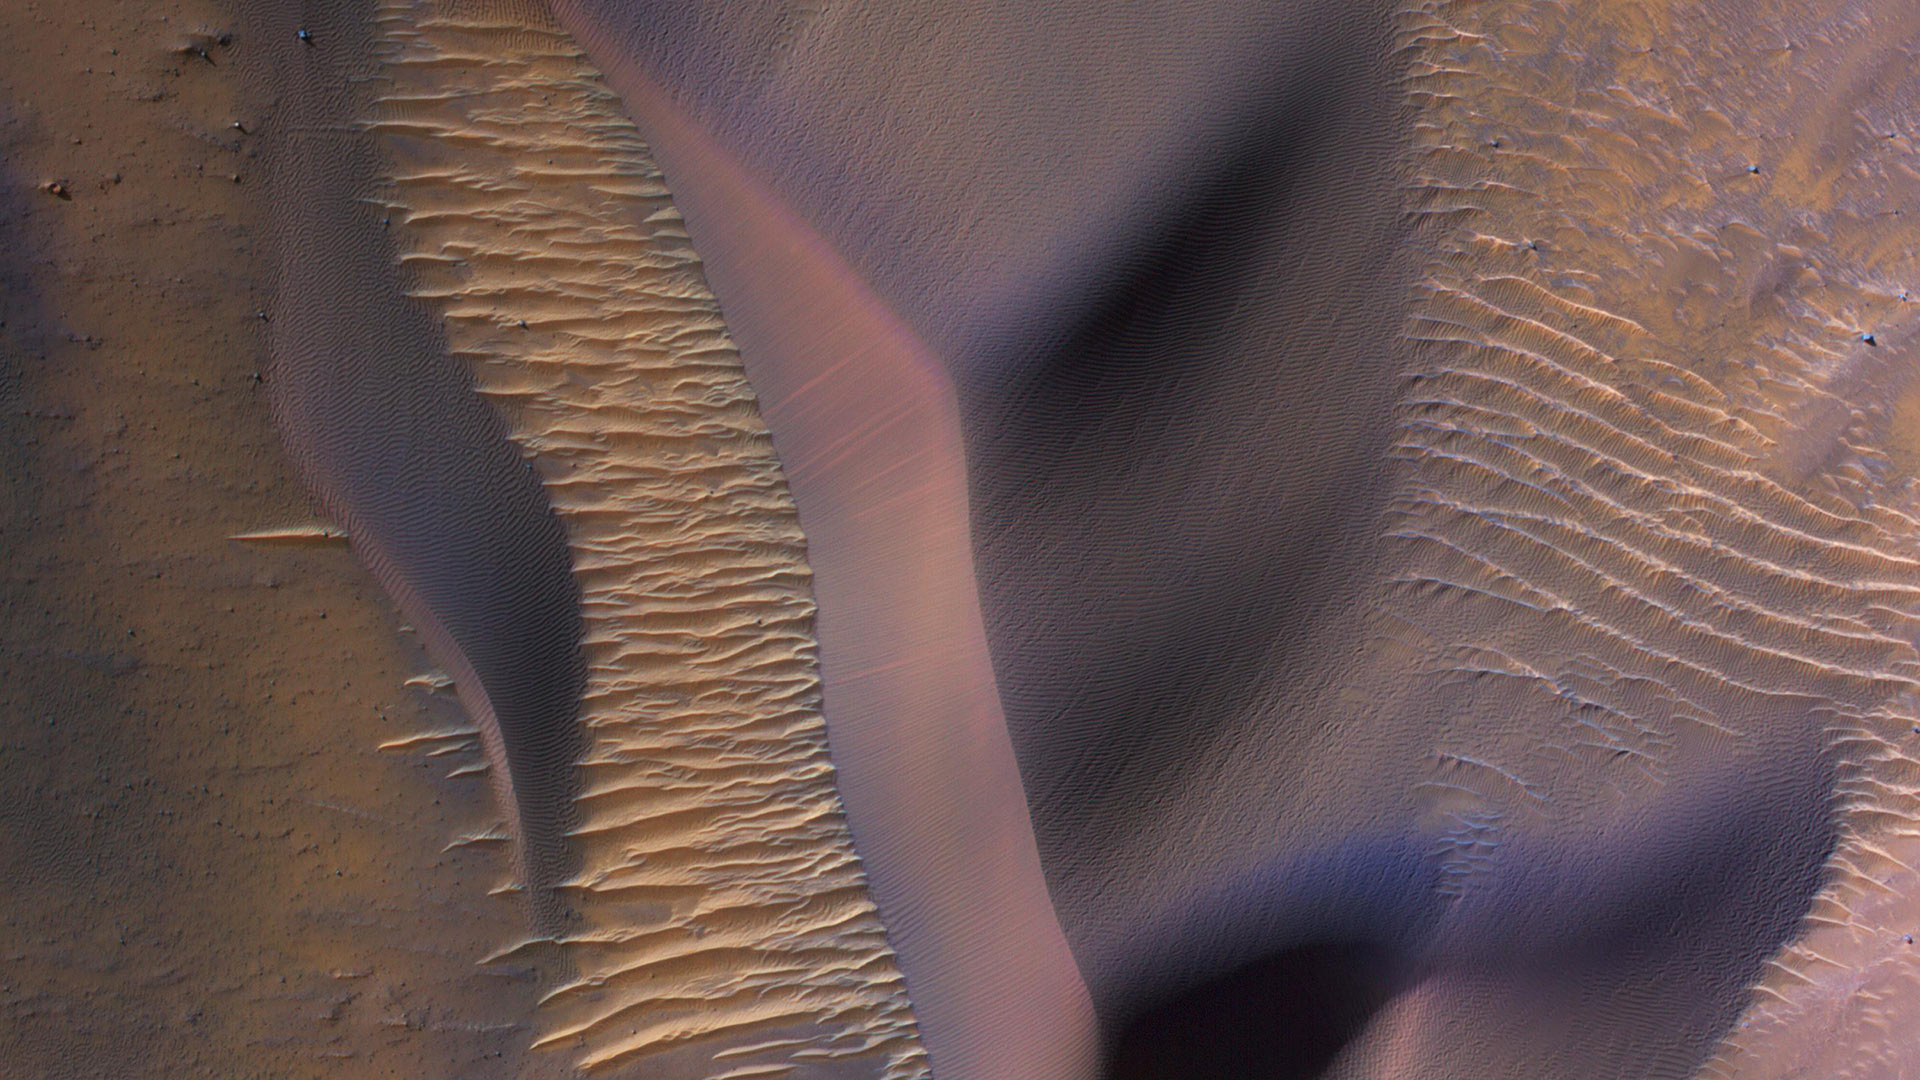 Photo of sand dunes taken from Mars orbit.